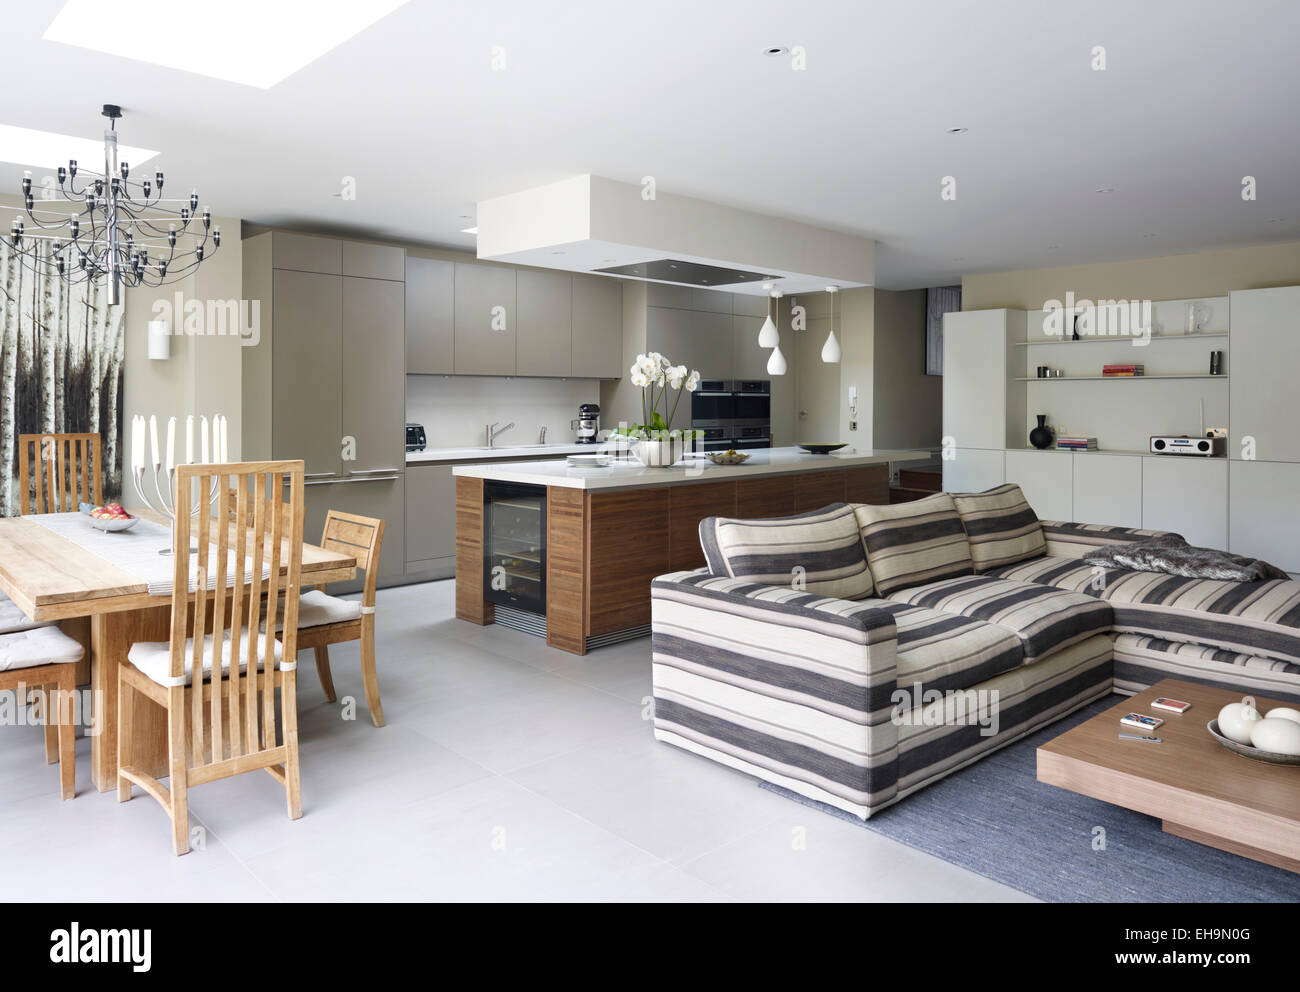 Modern Open Plan Kitchen Dining Area And Living Area With Striped Stock Photo Royalty Free